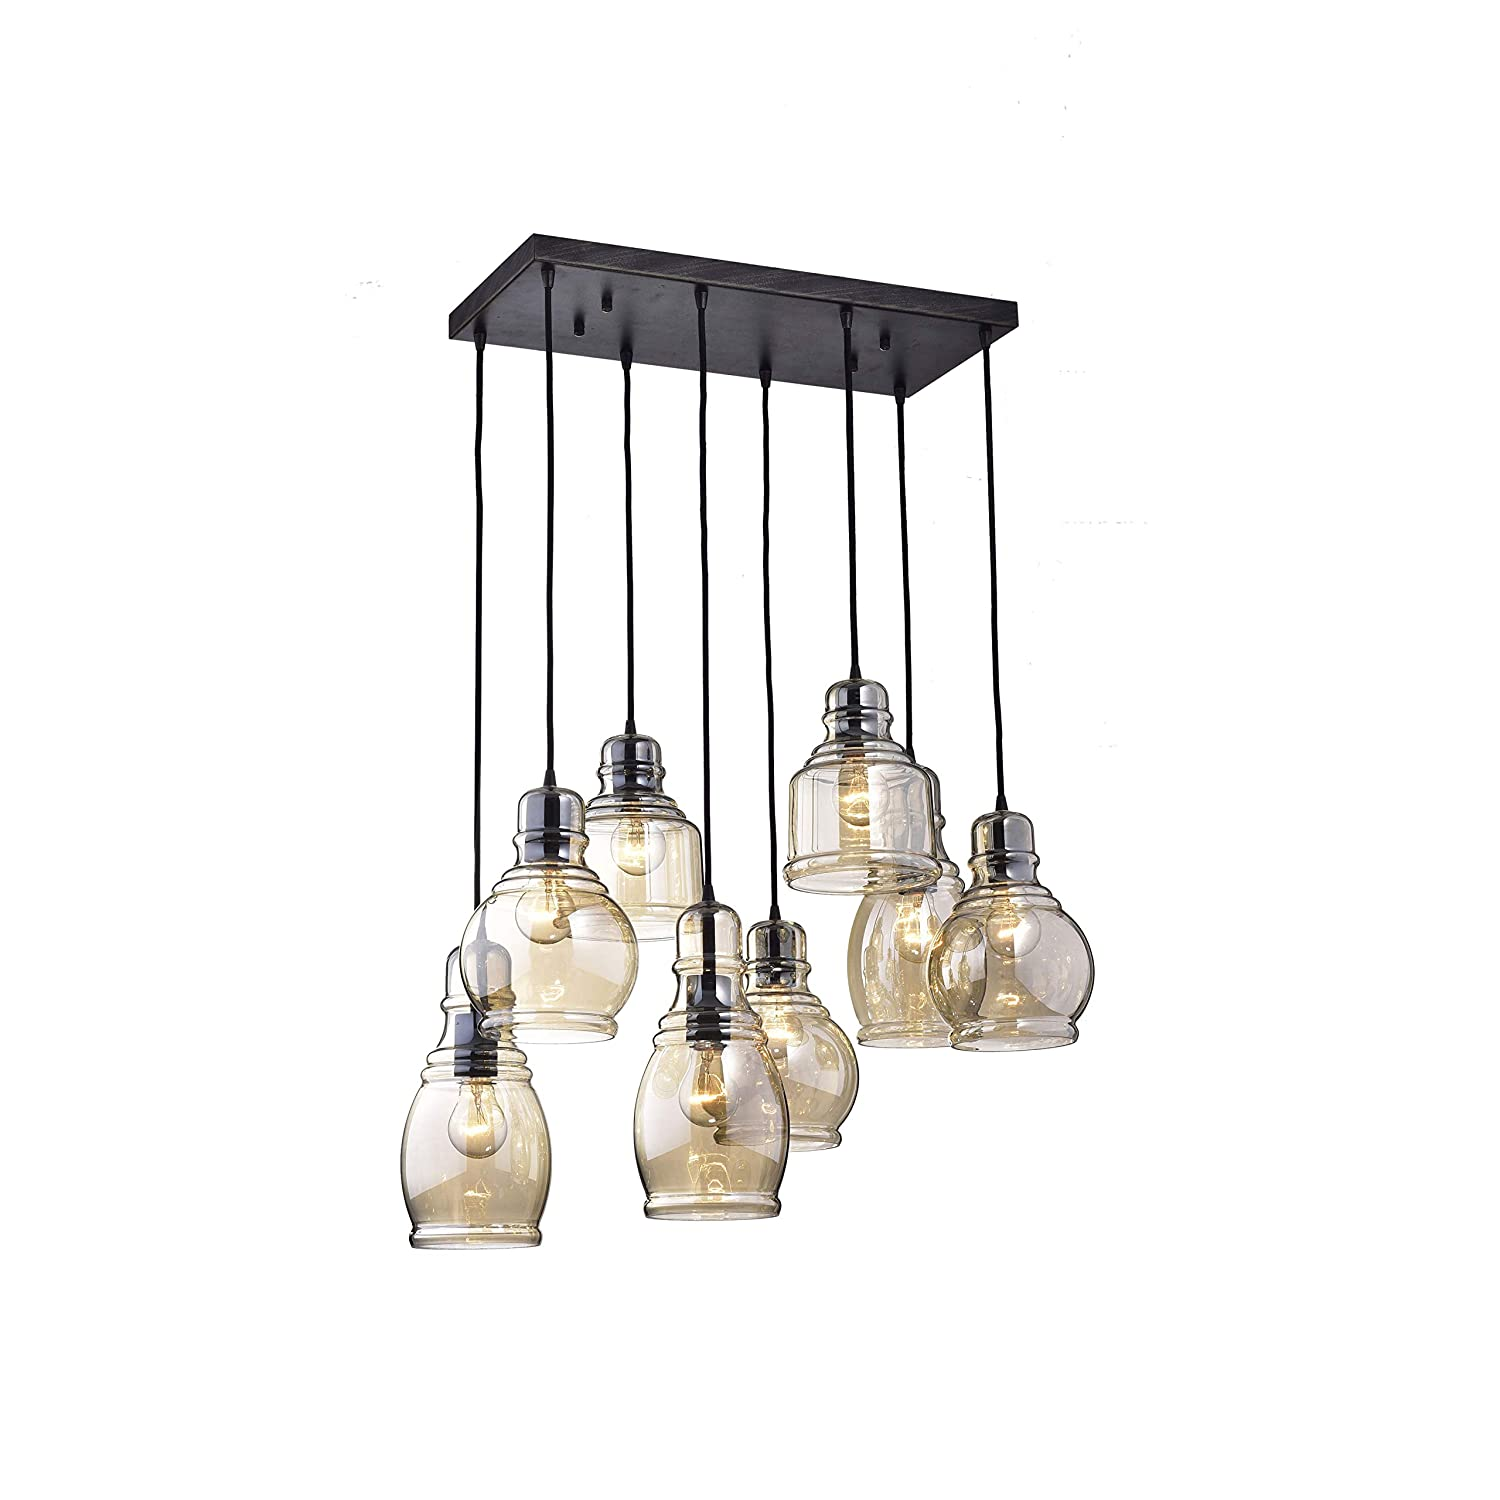 Jojospring Mariana 8 Light Cognac Glass Cluster Pendant In Antique Ceiling Wiring On Diagram Group Picture Image By Black Finish